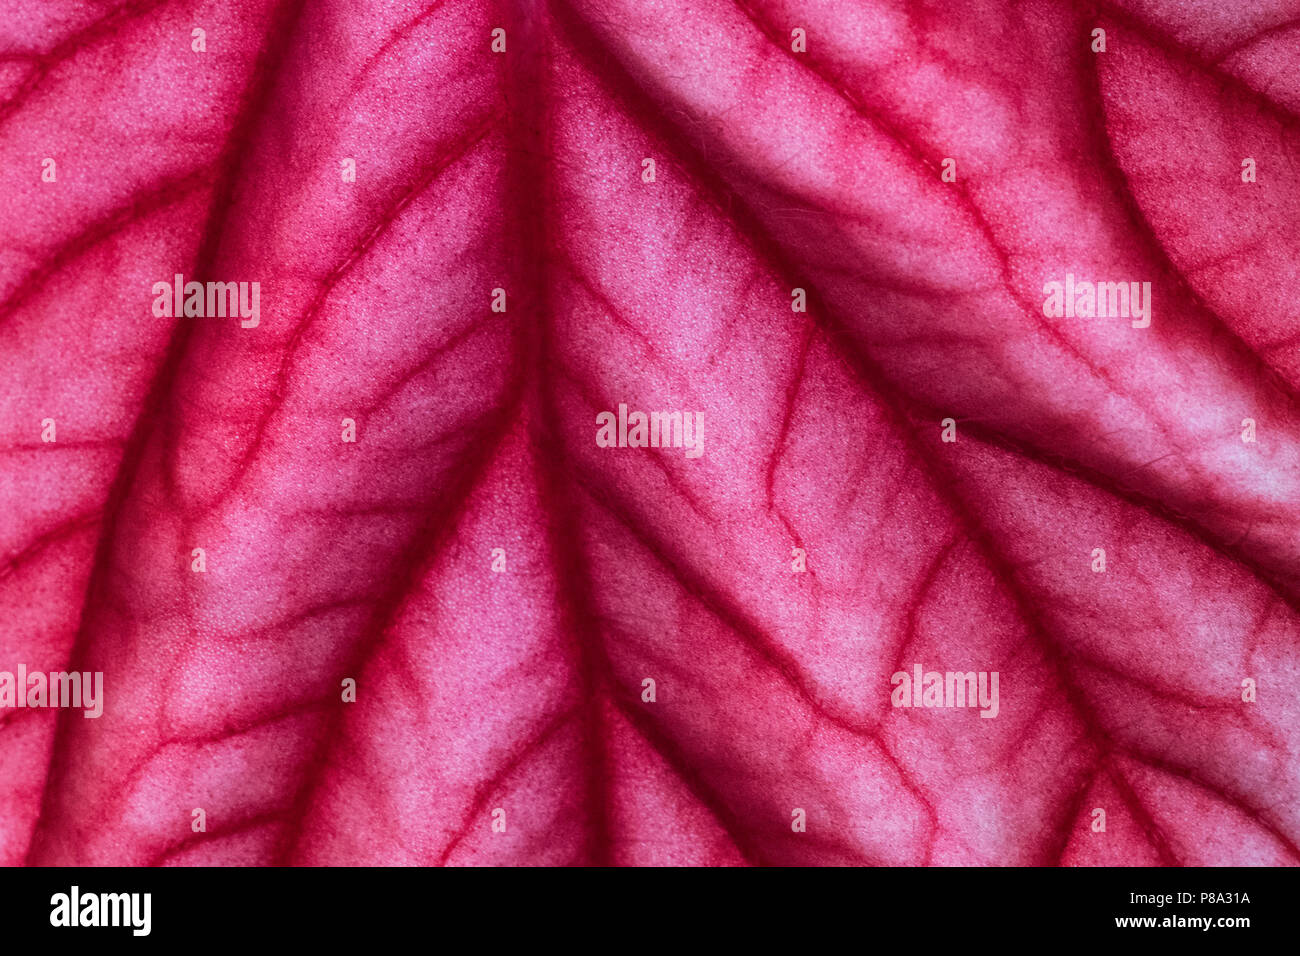 Elephant plant leaf closeup, showing the surface pores and stoma. - Stock Image